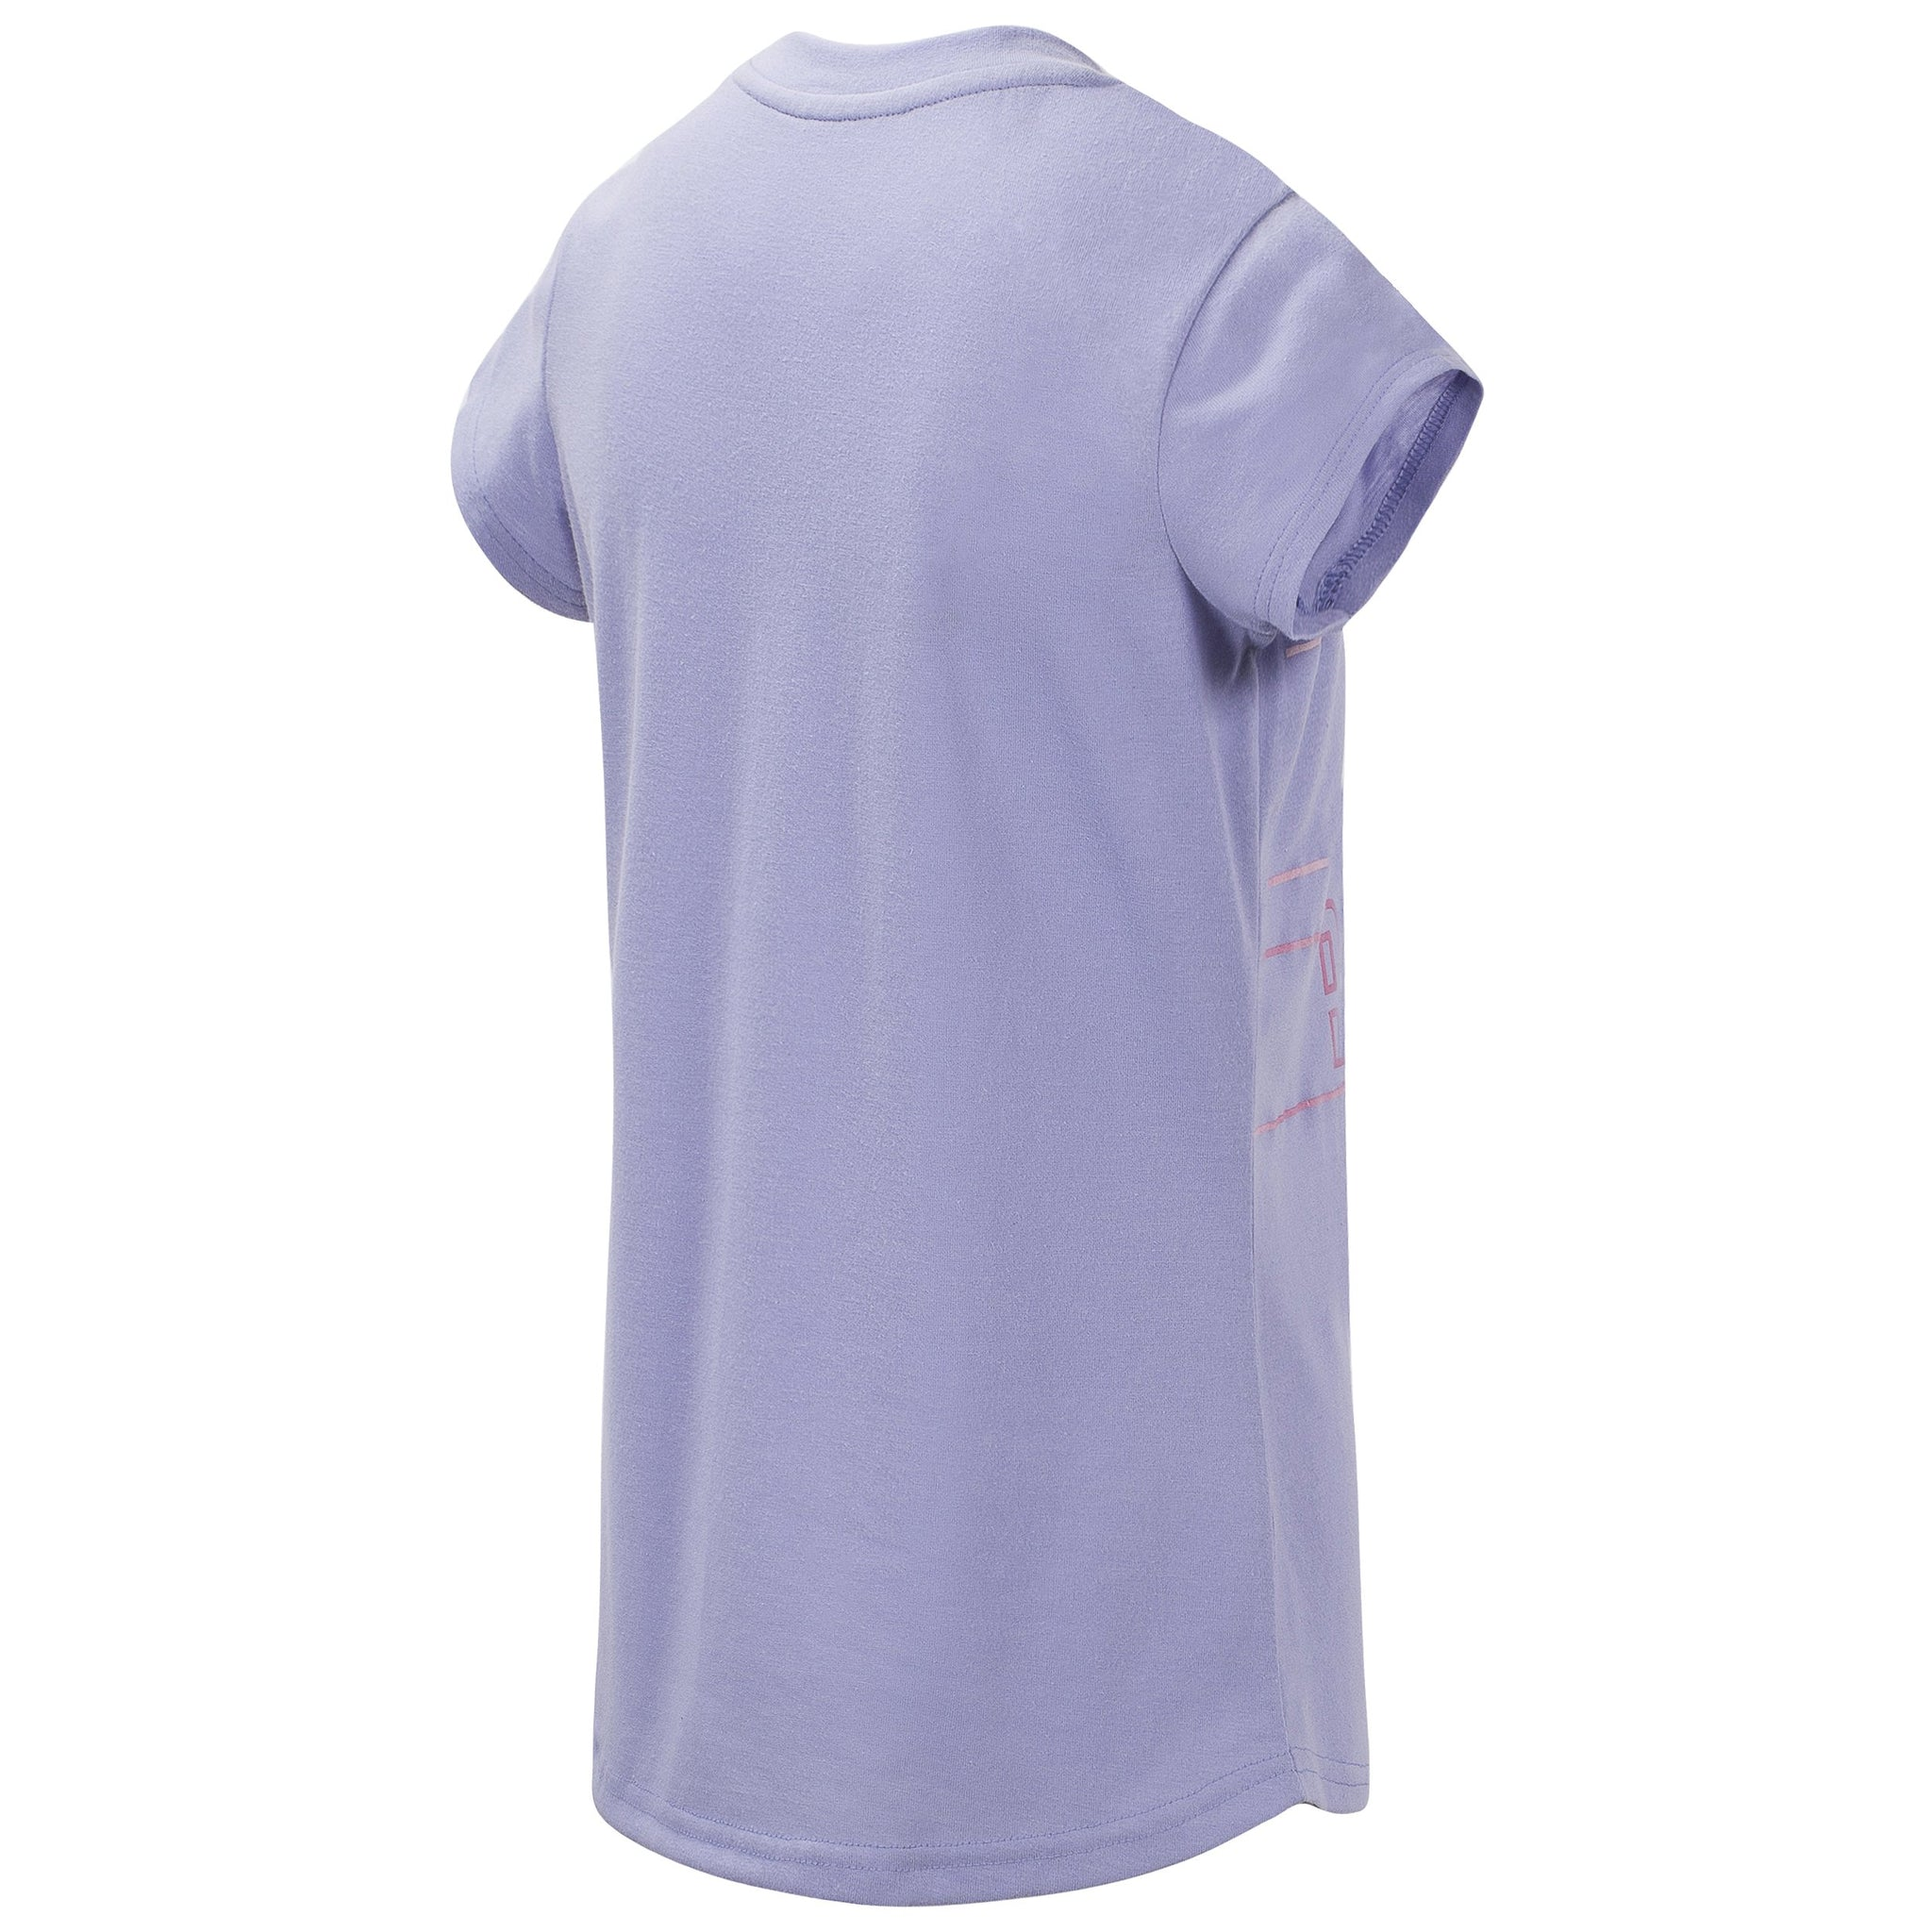 Girls' Clear Amethyst Short Sleeve Graphic Tee